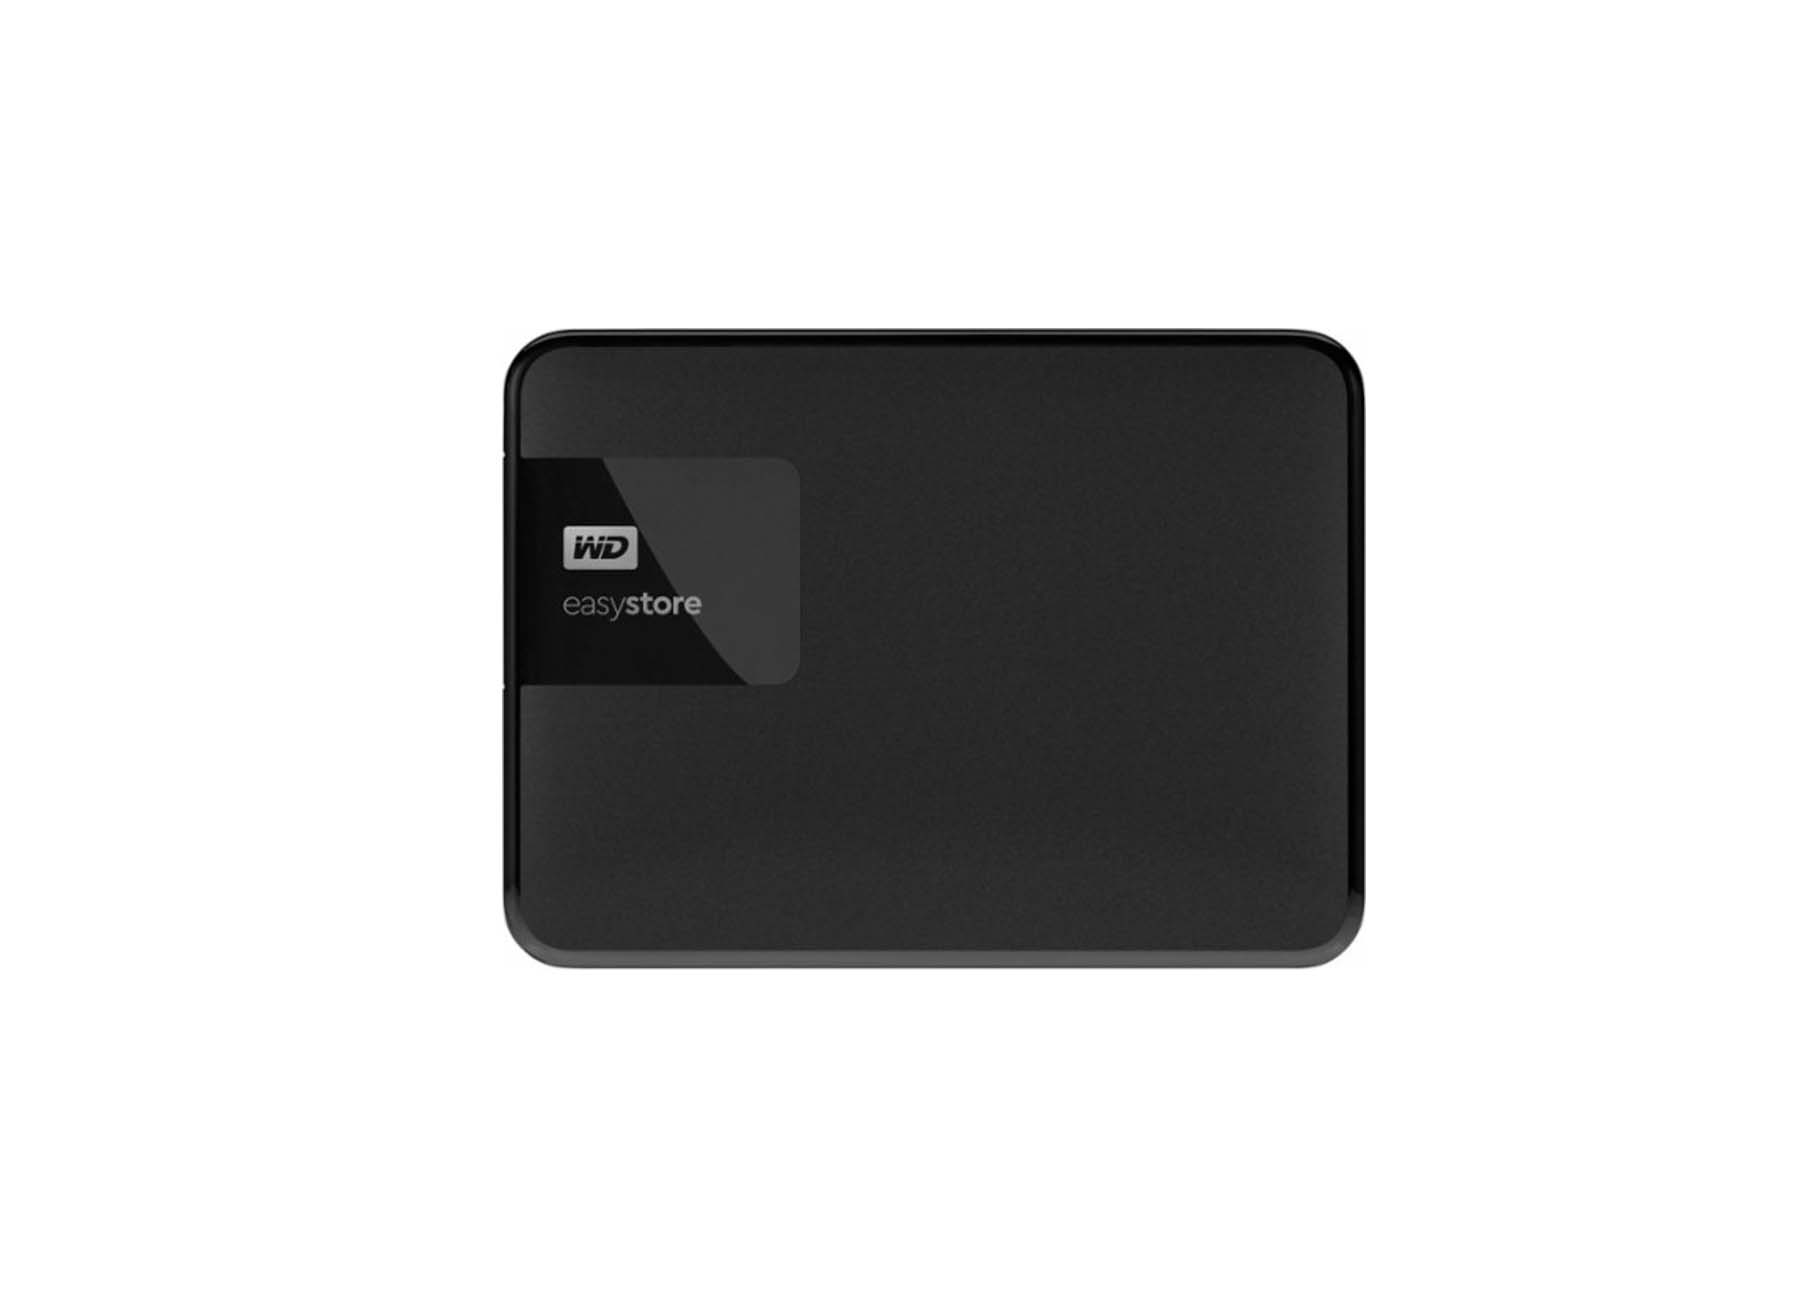 WD Black Easystore 2TB External USB 3.0 Portable Hard Drive